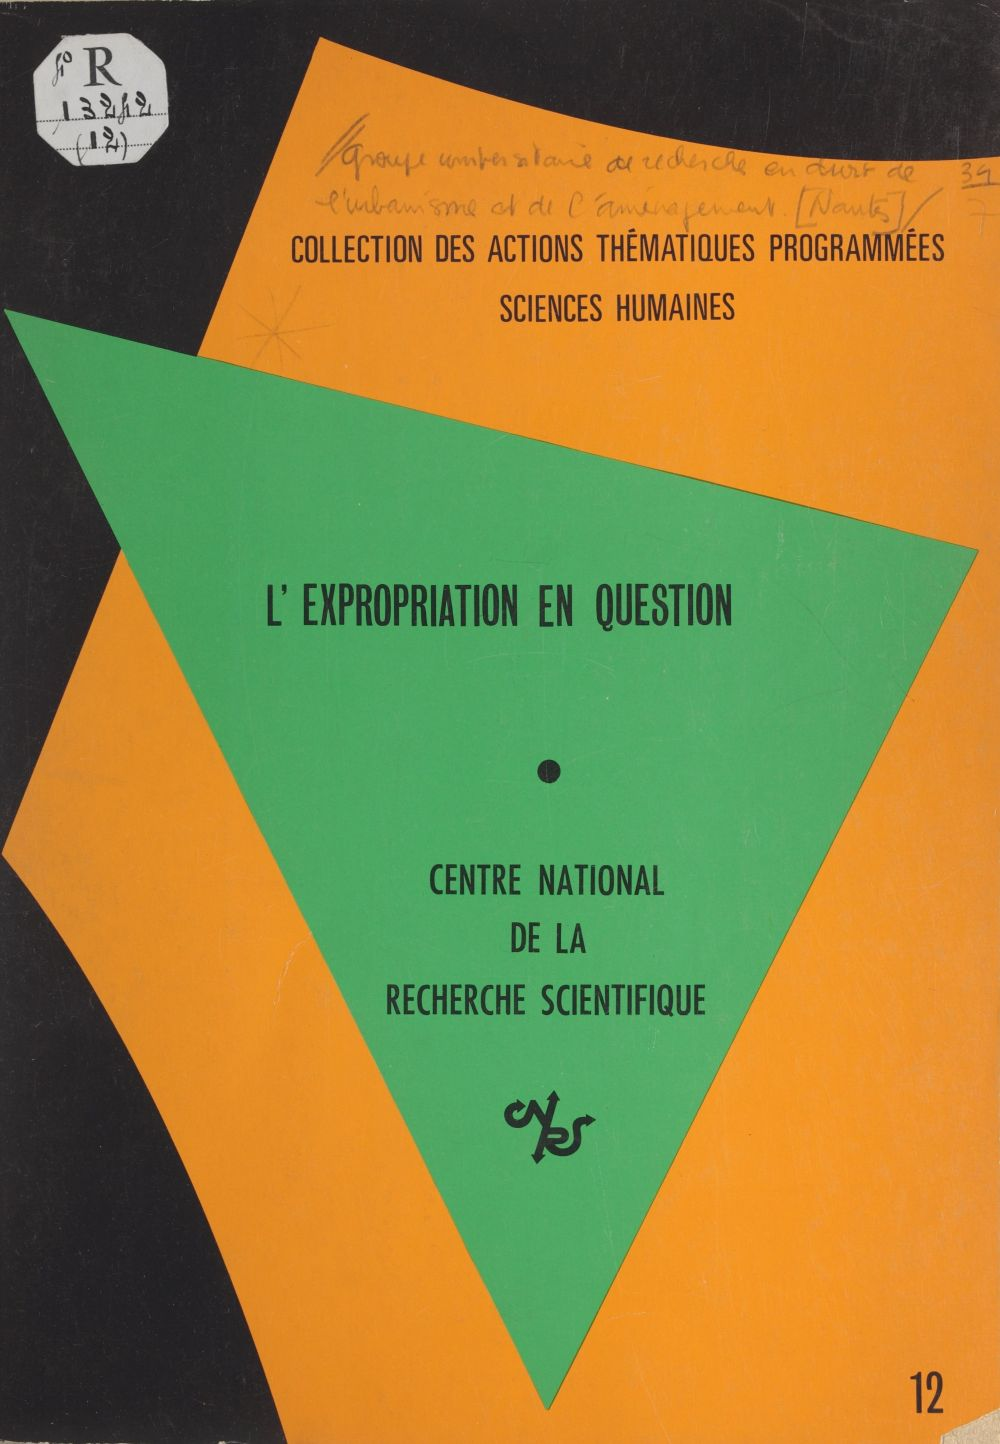 L'expropriation en question